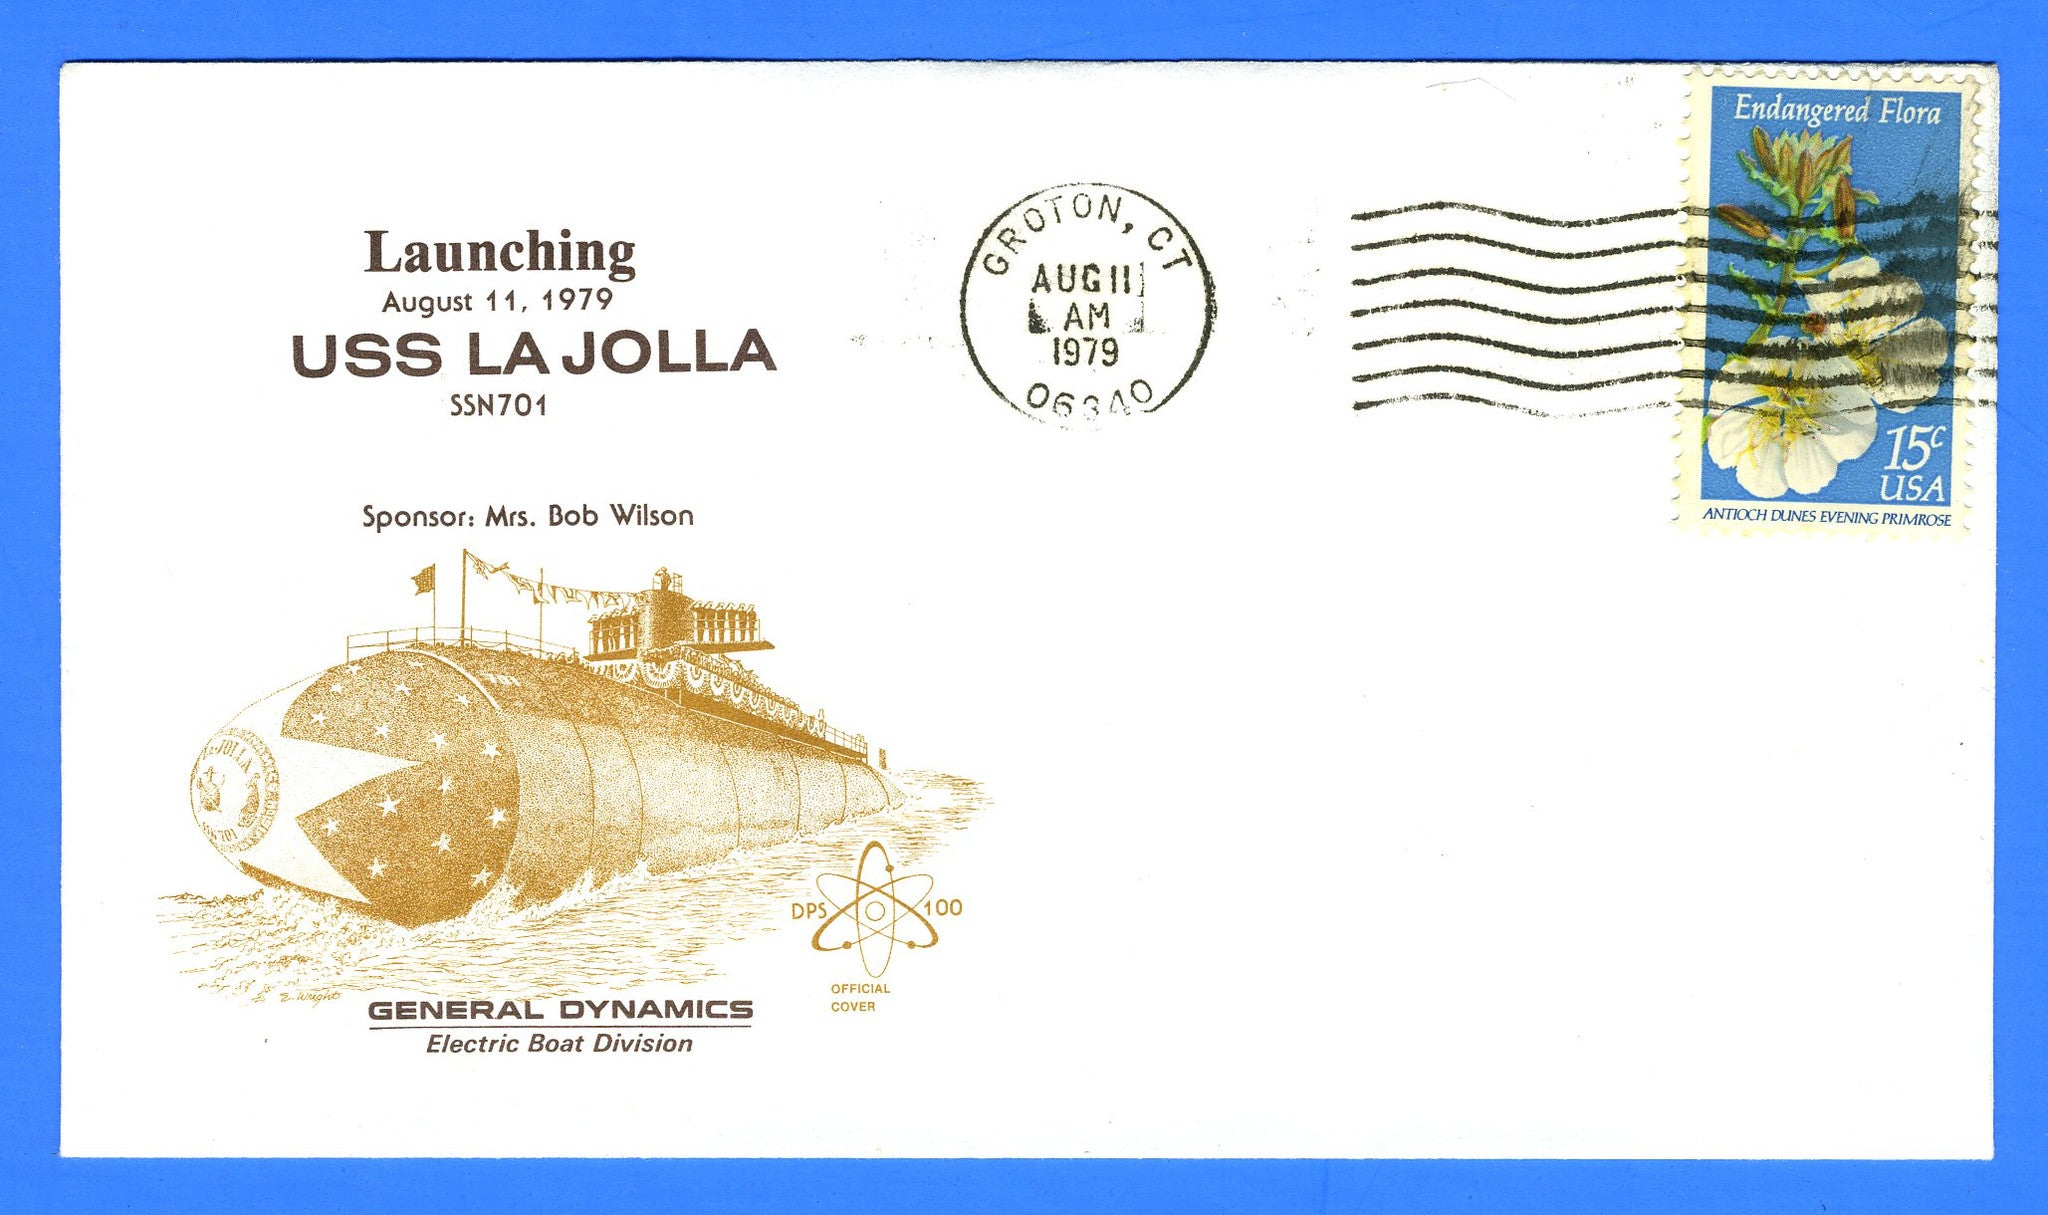 USS La Jolla SSN-701 Launched August 11, 1979 - Cachet by DPS No. 100 (Dynamic Philatelic Society)